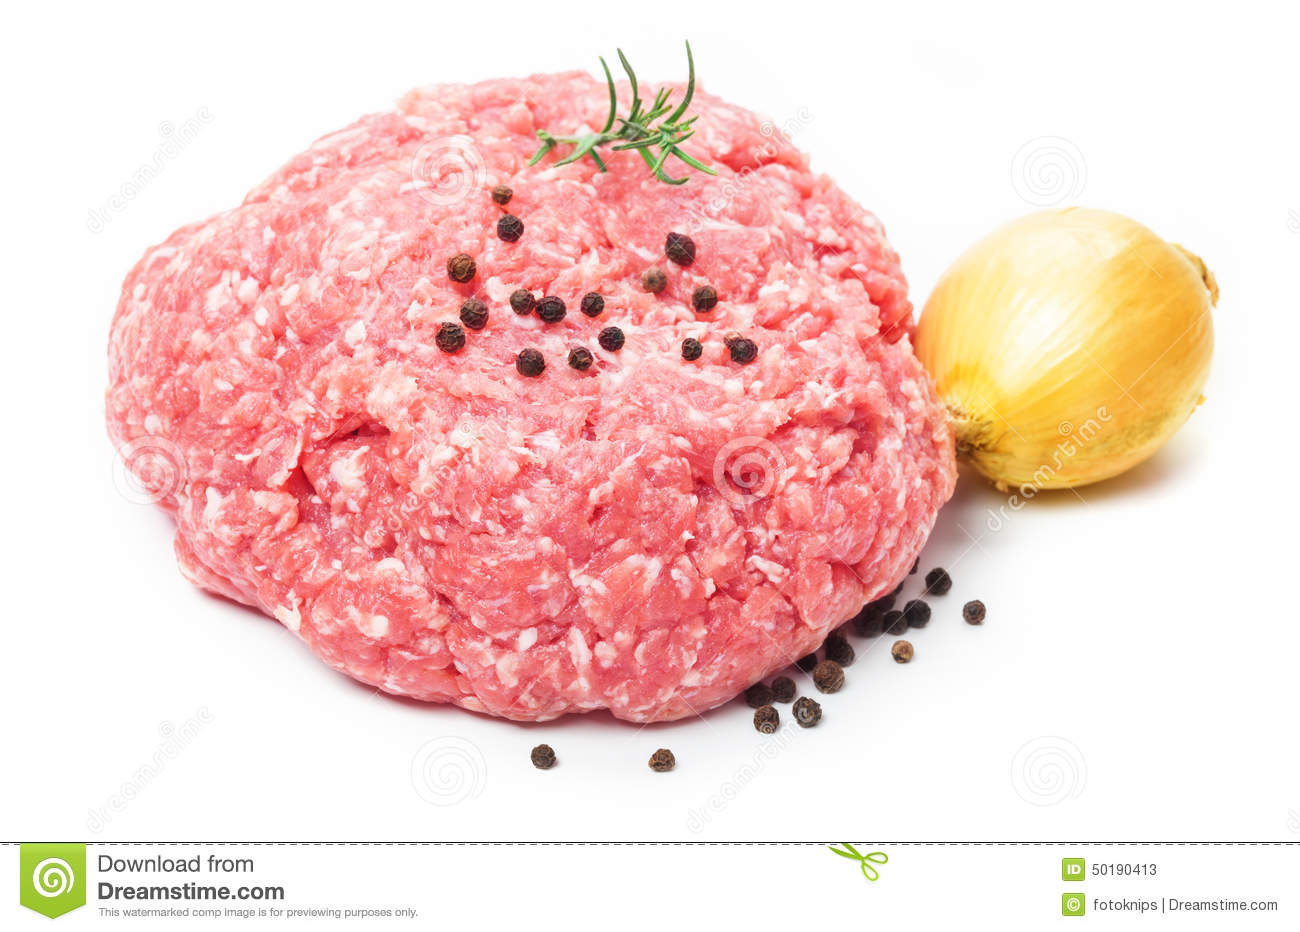 Ground Pork, Minced Meat Stock Photo - Image: 50190413